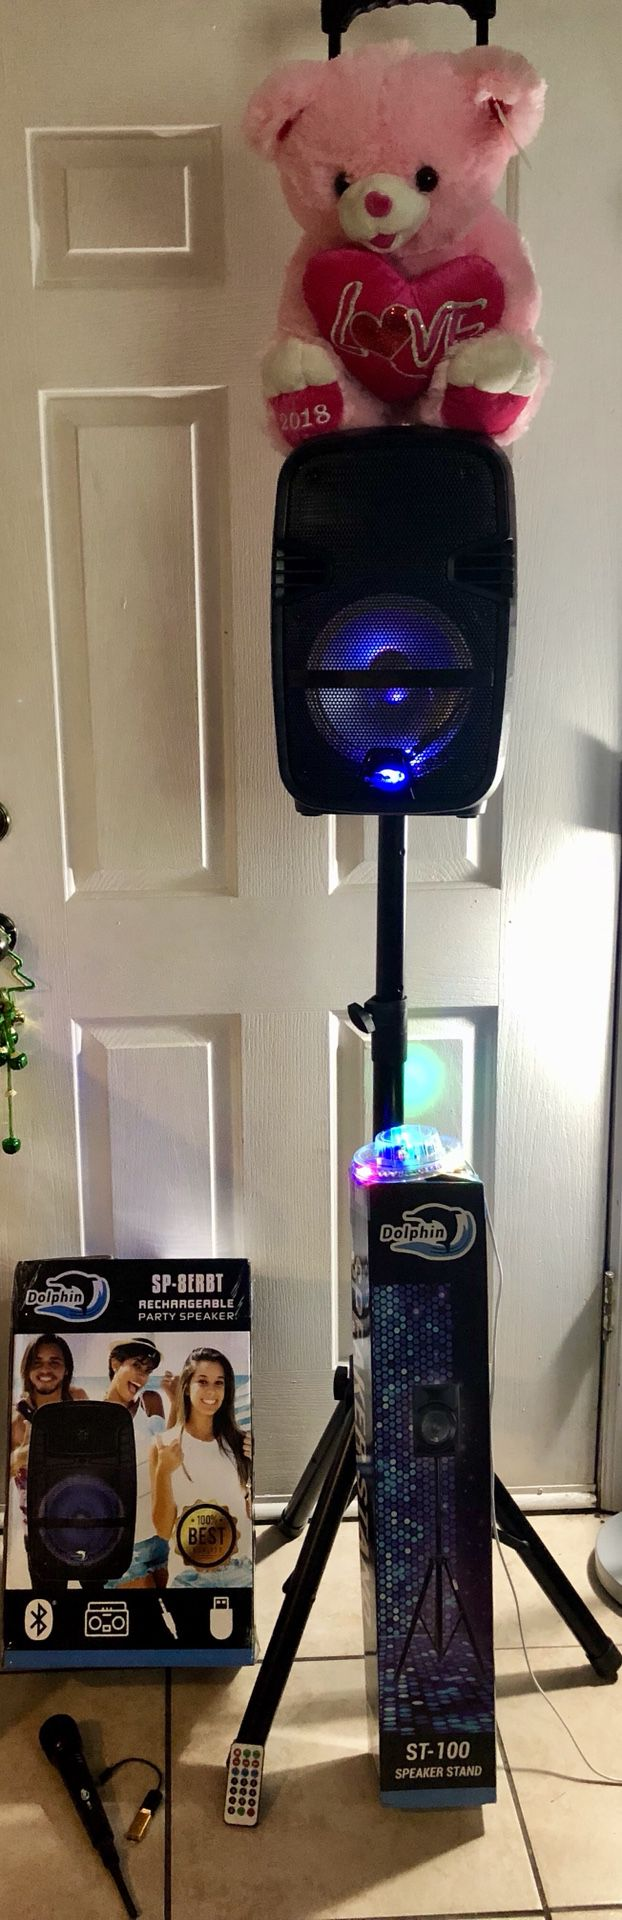 PARTY SPEAKER 🔊🎁❤️STAND ❤️🎤❤️MICRÓFONO 🎁 PARTY SPEAKER. 🎁❤️💝 BLUETOOTH RECHARGEABLE BOCINA REMOTE CONTROL WITH STAND